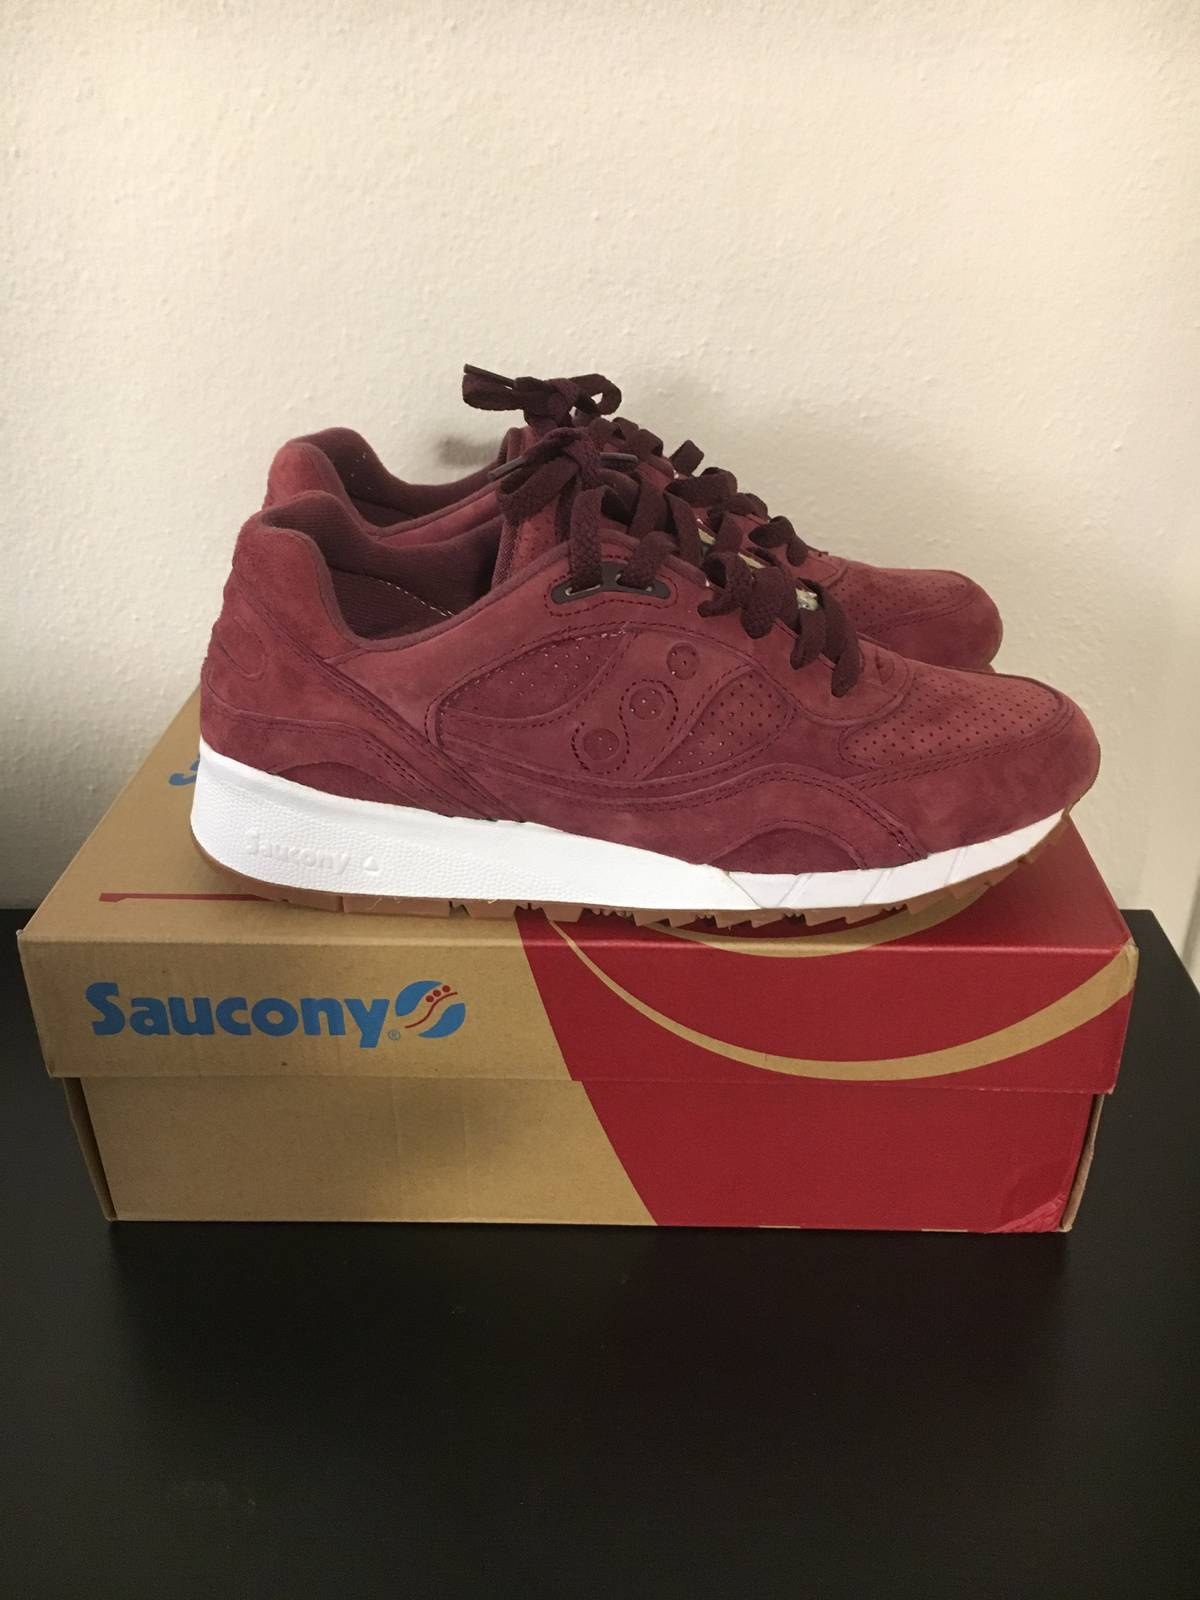 Saucony Saucony Shadow 6000 Burgundy Exclusive Size 9 - Low-Top Sneakers  for Sale - Grailed f3f39350bbb1